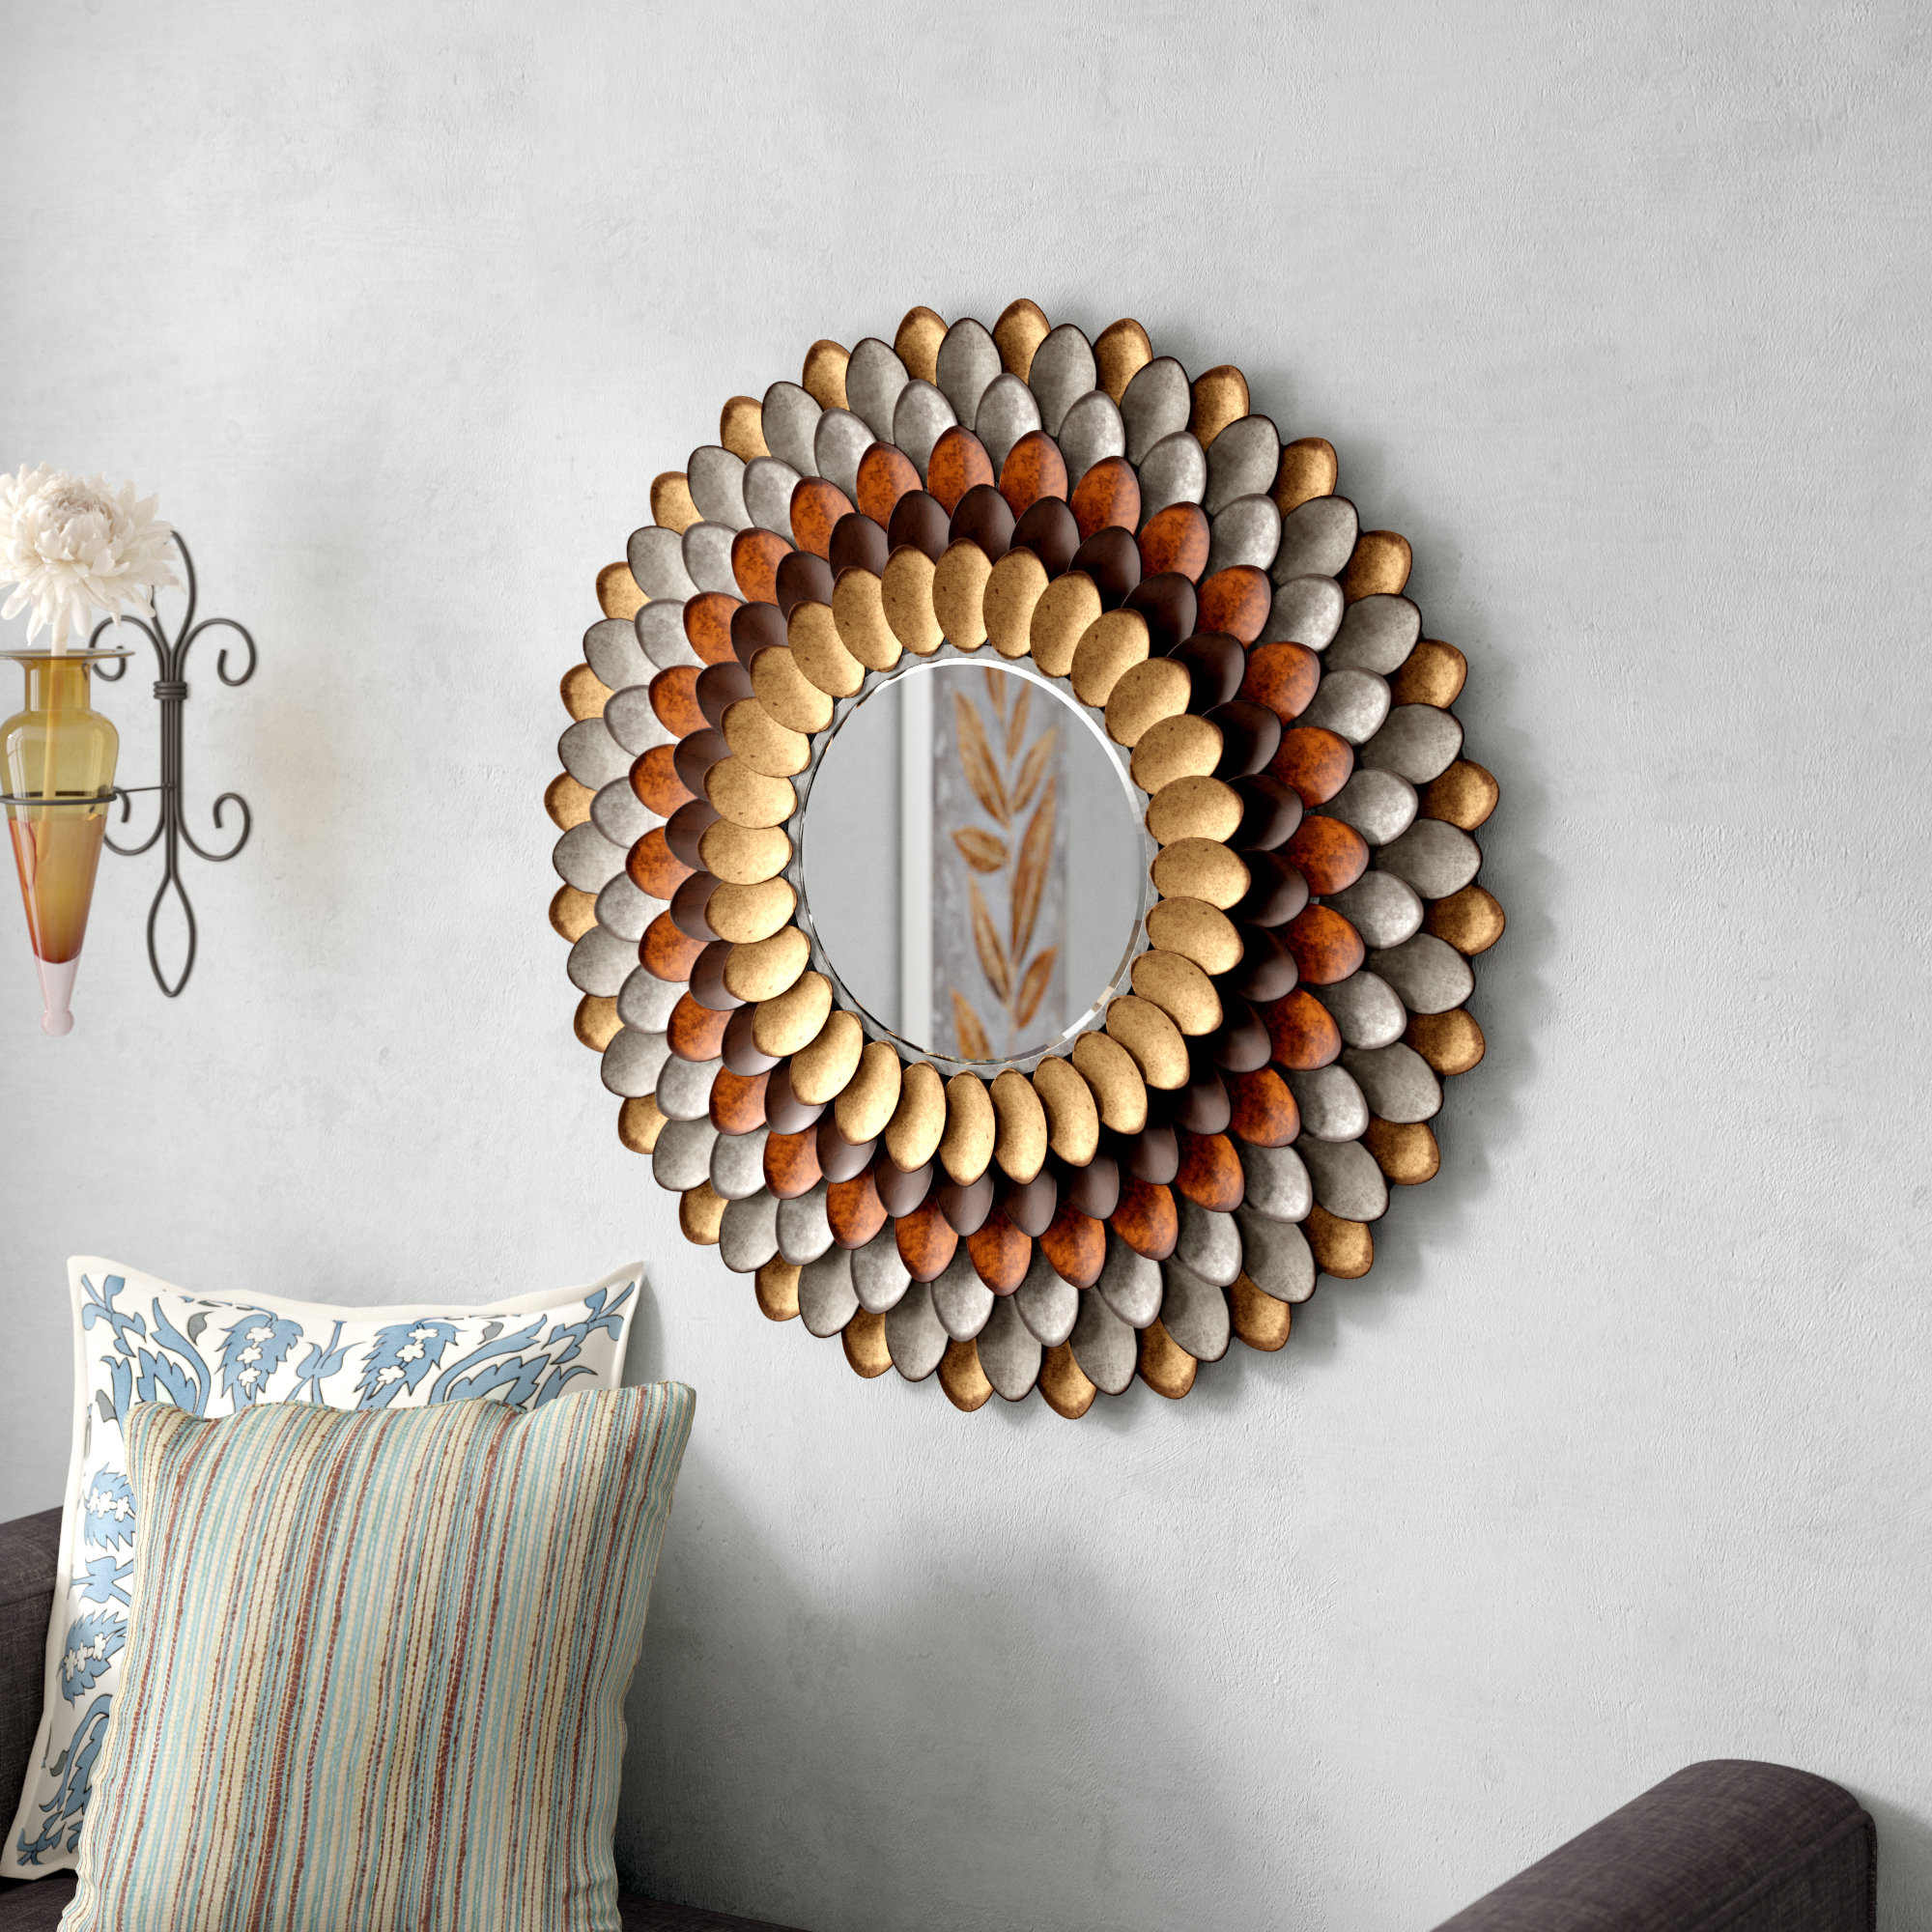 Most Recent Decorative Round Wall Mirrors Intended For Decorative Round Wall Mirror (View 6 of 20)